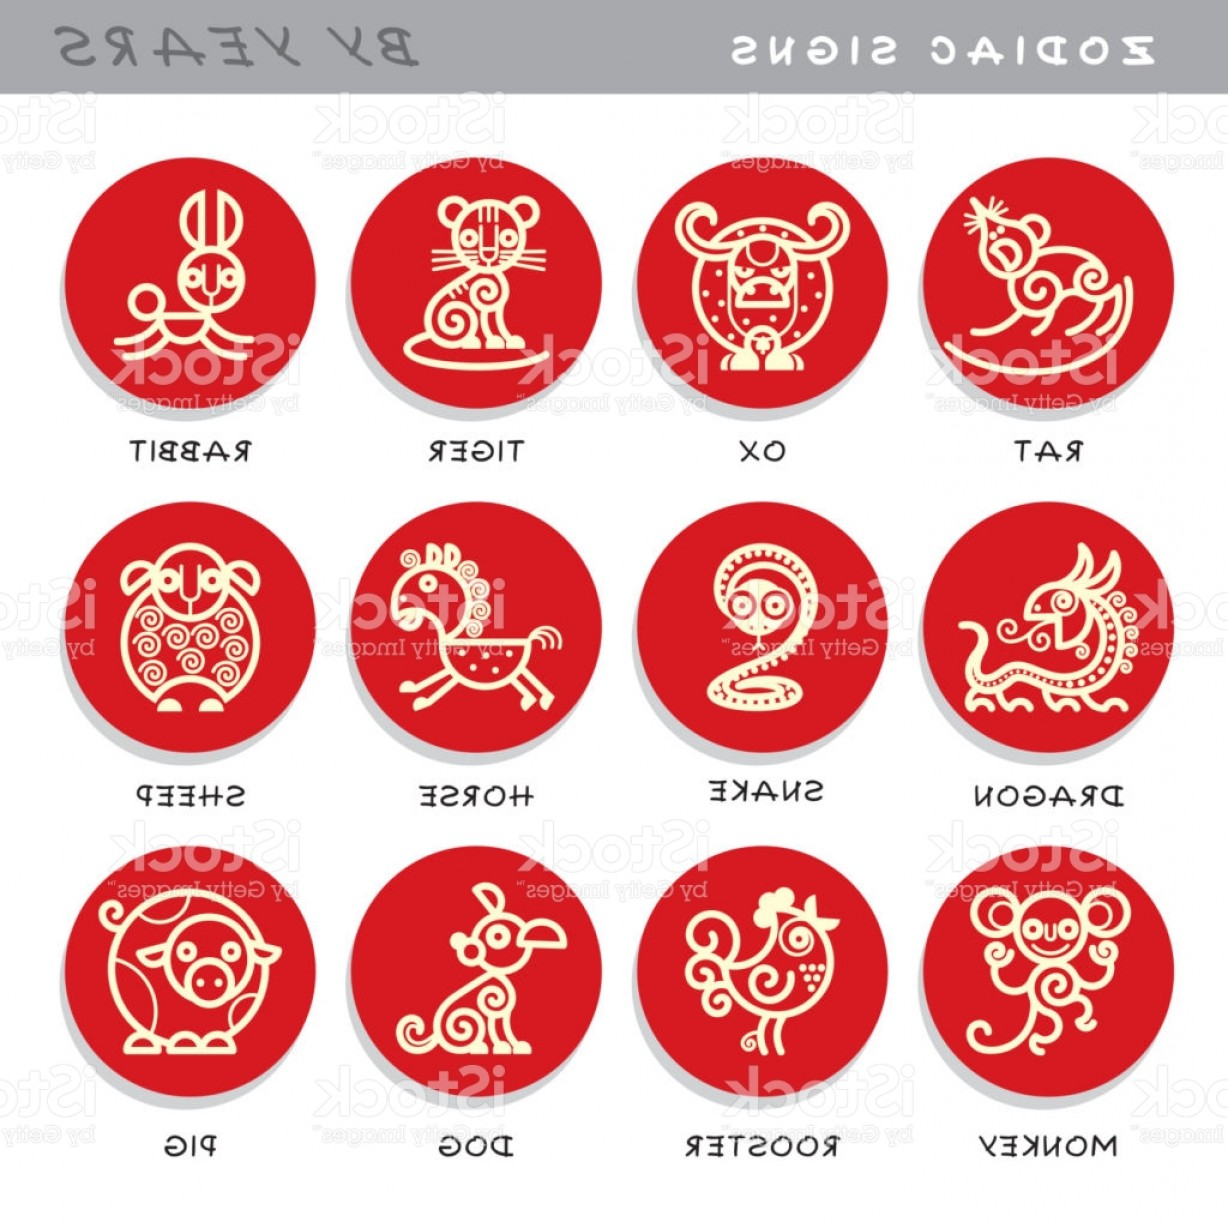 Chinese Zodiac Signs Vector: Zodiac Signs Vector Icons Of Astrological Animals By Years Symbols Of Chinese Gm